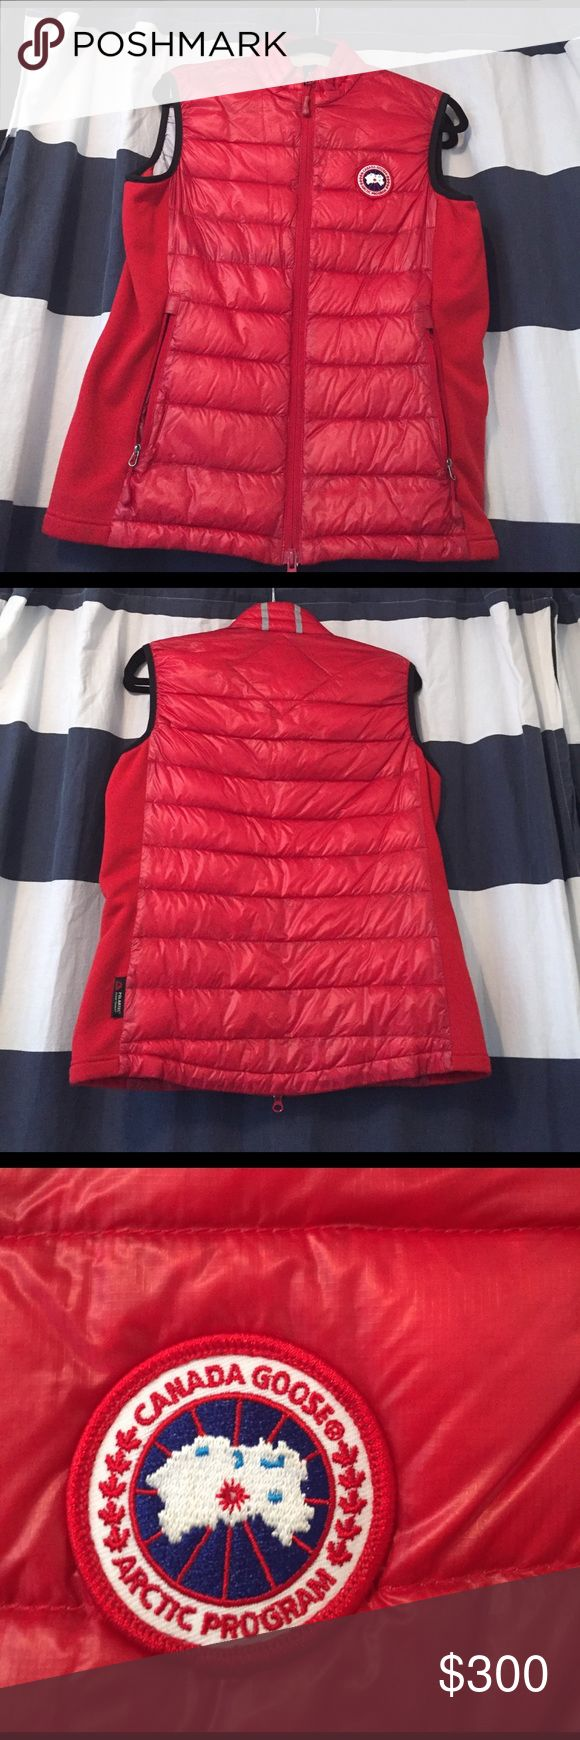 Canada goose down red vest MAKE AN OFFER / CHECK OUT MY OTHER ITEMS FOR BUNDLES!! Authentic Canada goose down vest. Amazing and very warm! Canada Goose Jackets & Coats Vests